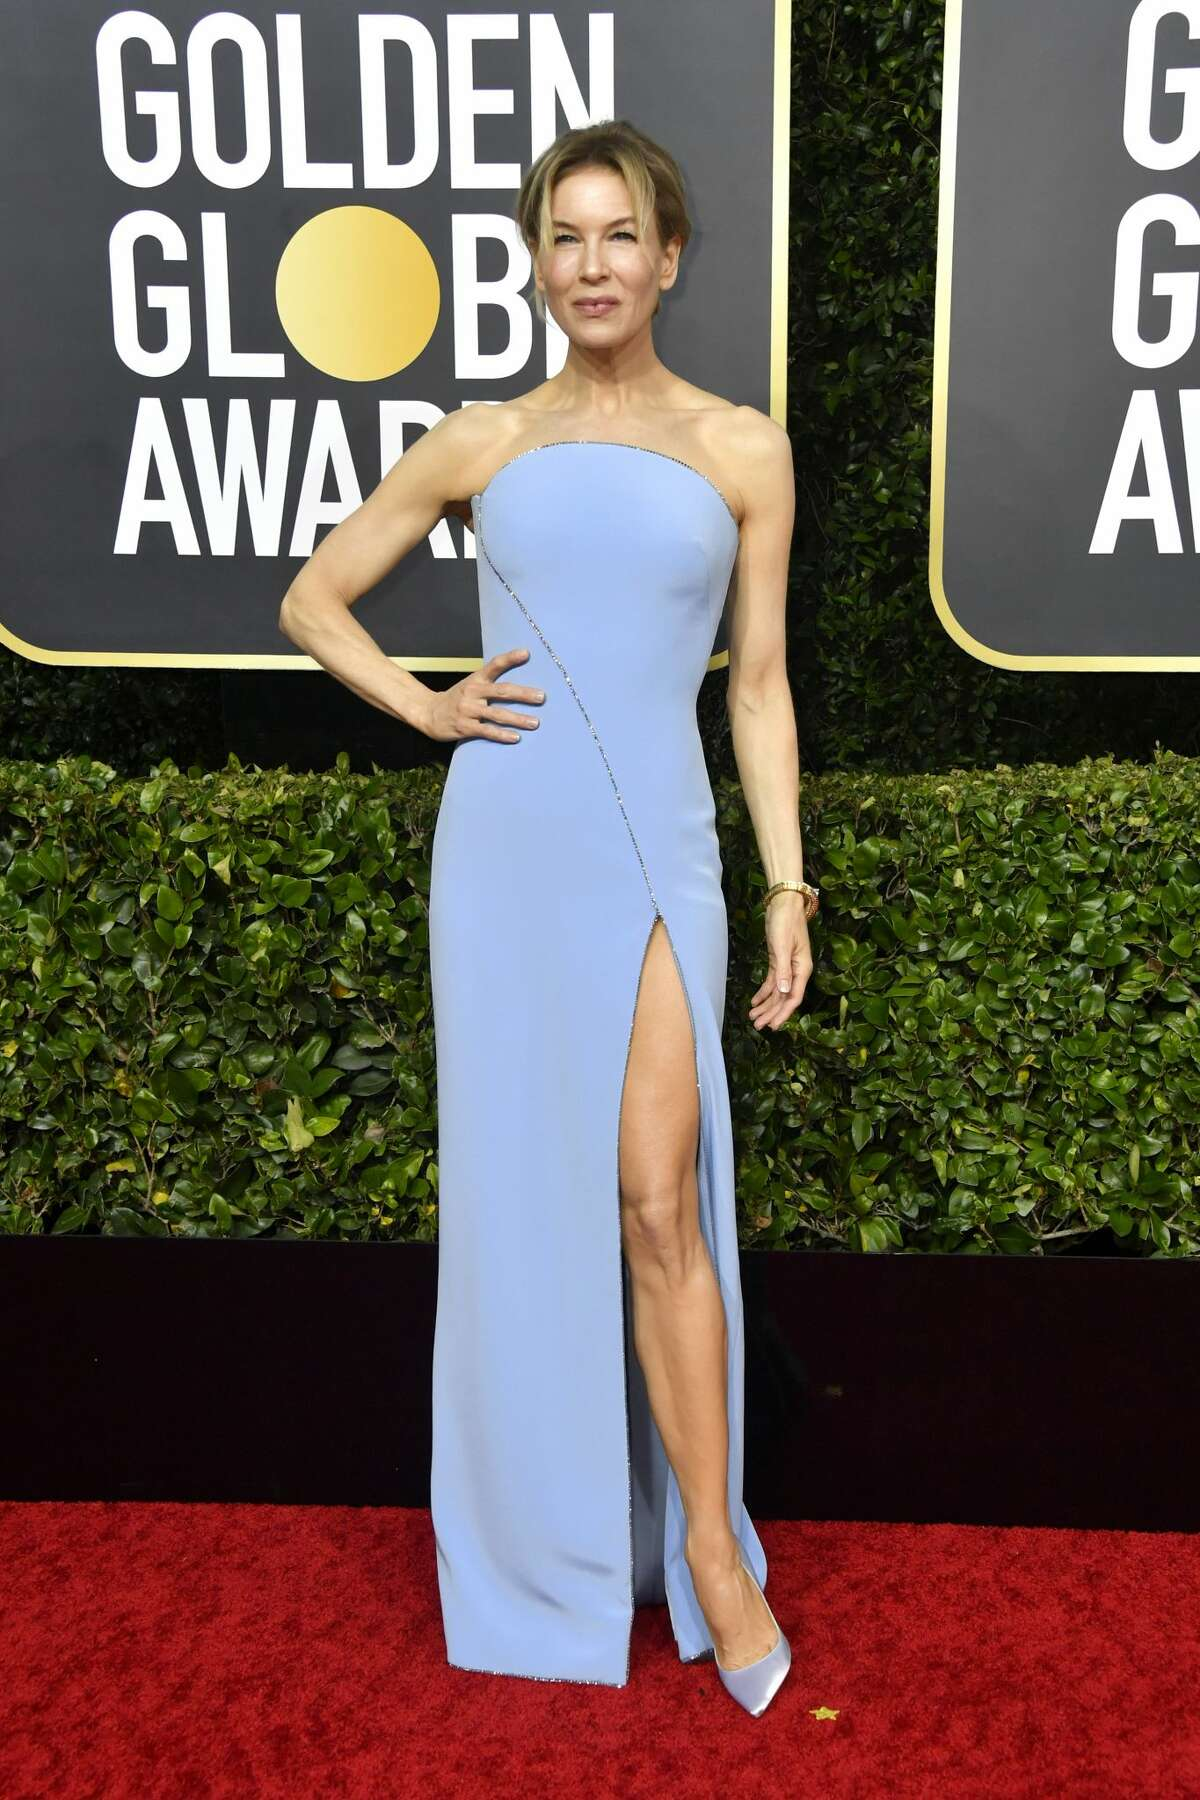 Renee Zellweger attends the 77th Annual Golden Globe Awards at The Beverly Hilton Hotel on January 05, 2020 in Beverly Hills, California.